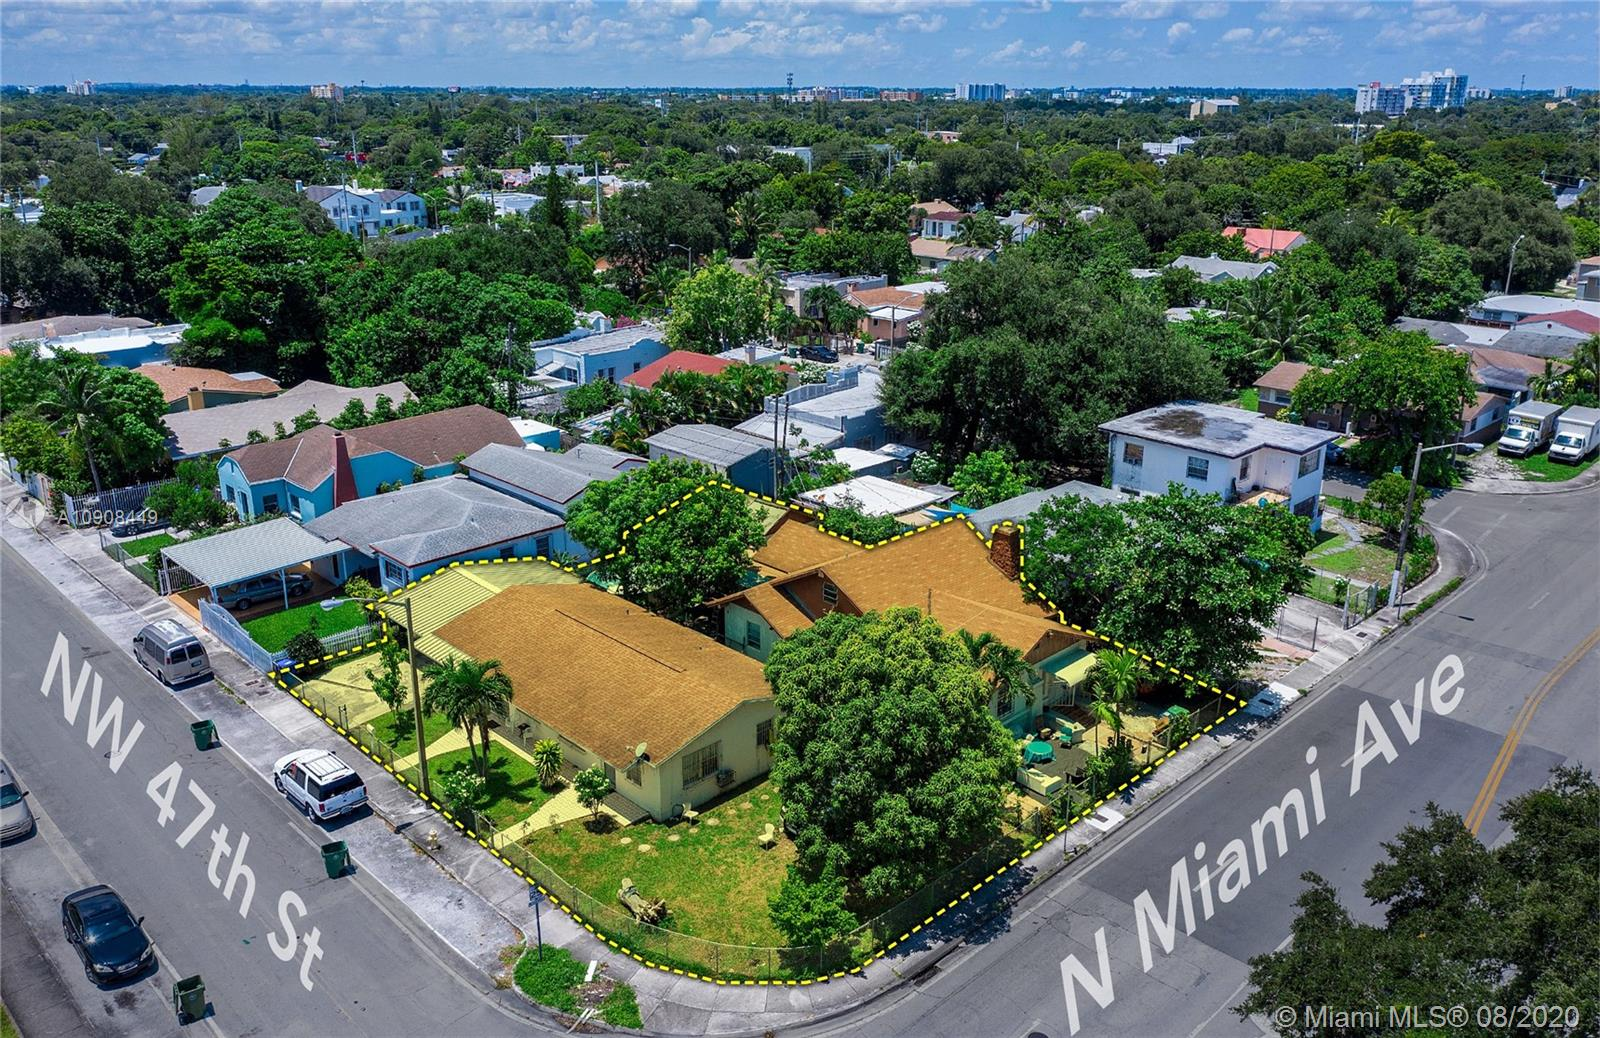 Details for 4702 Miami Ave- 1 Nw 47th St, Miami, FL 33127